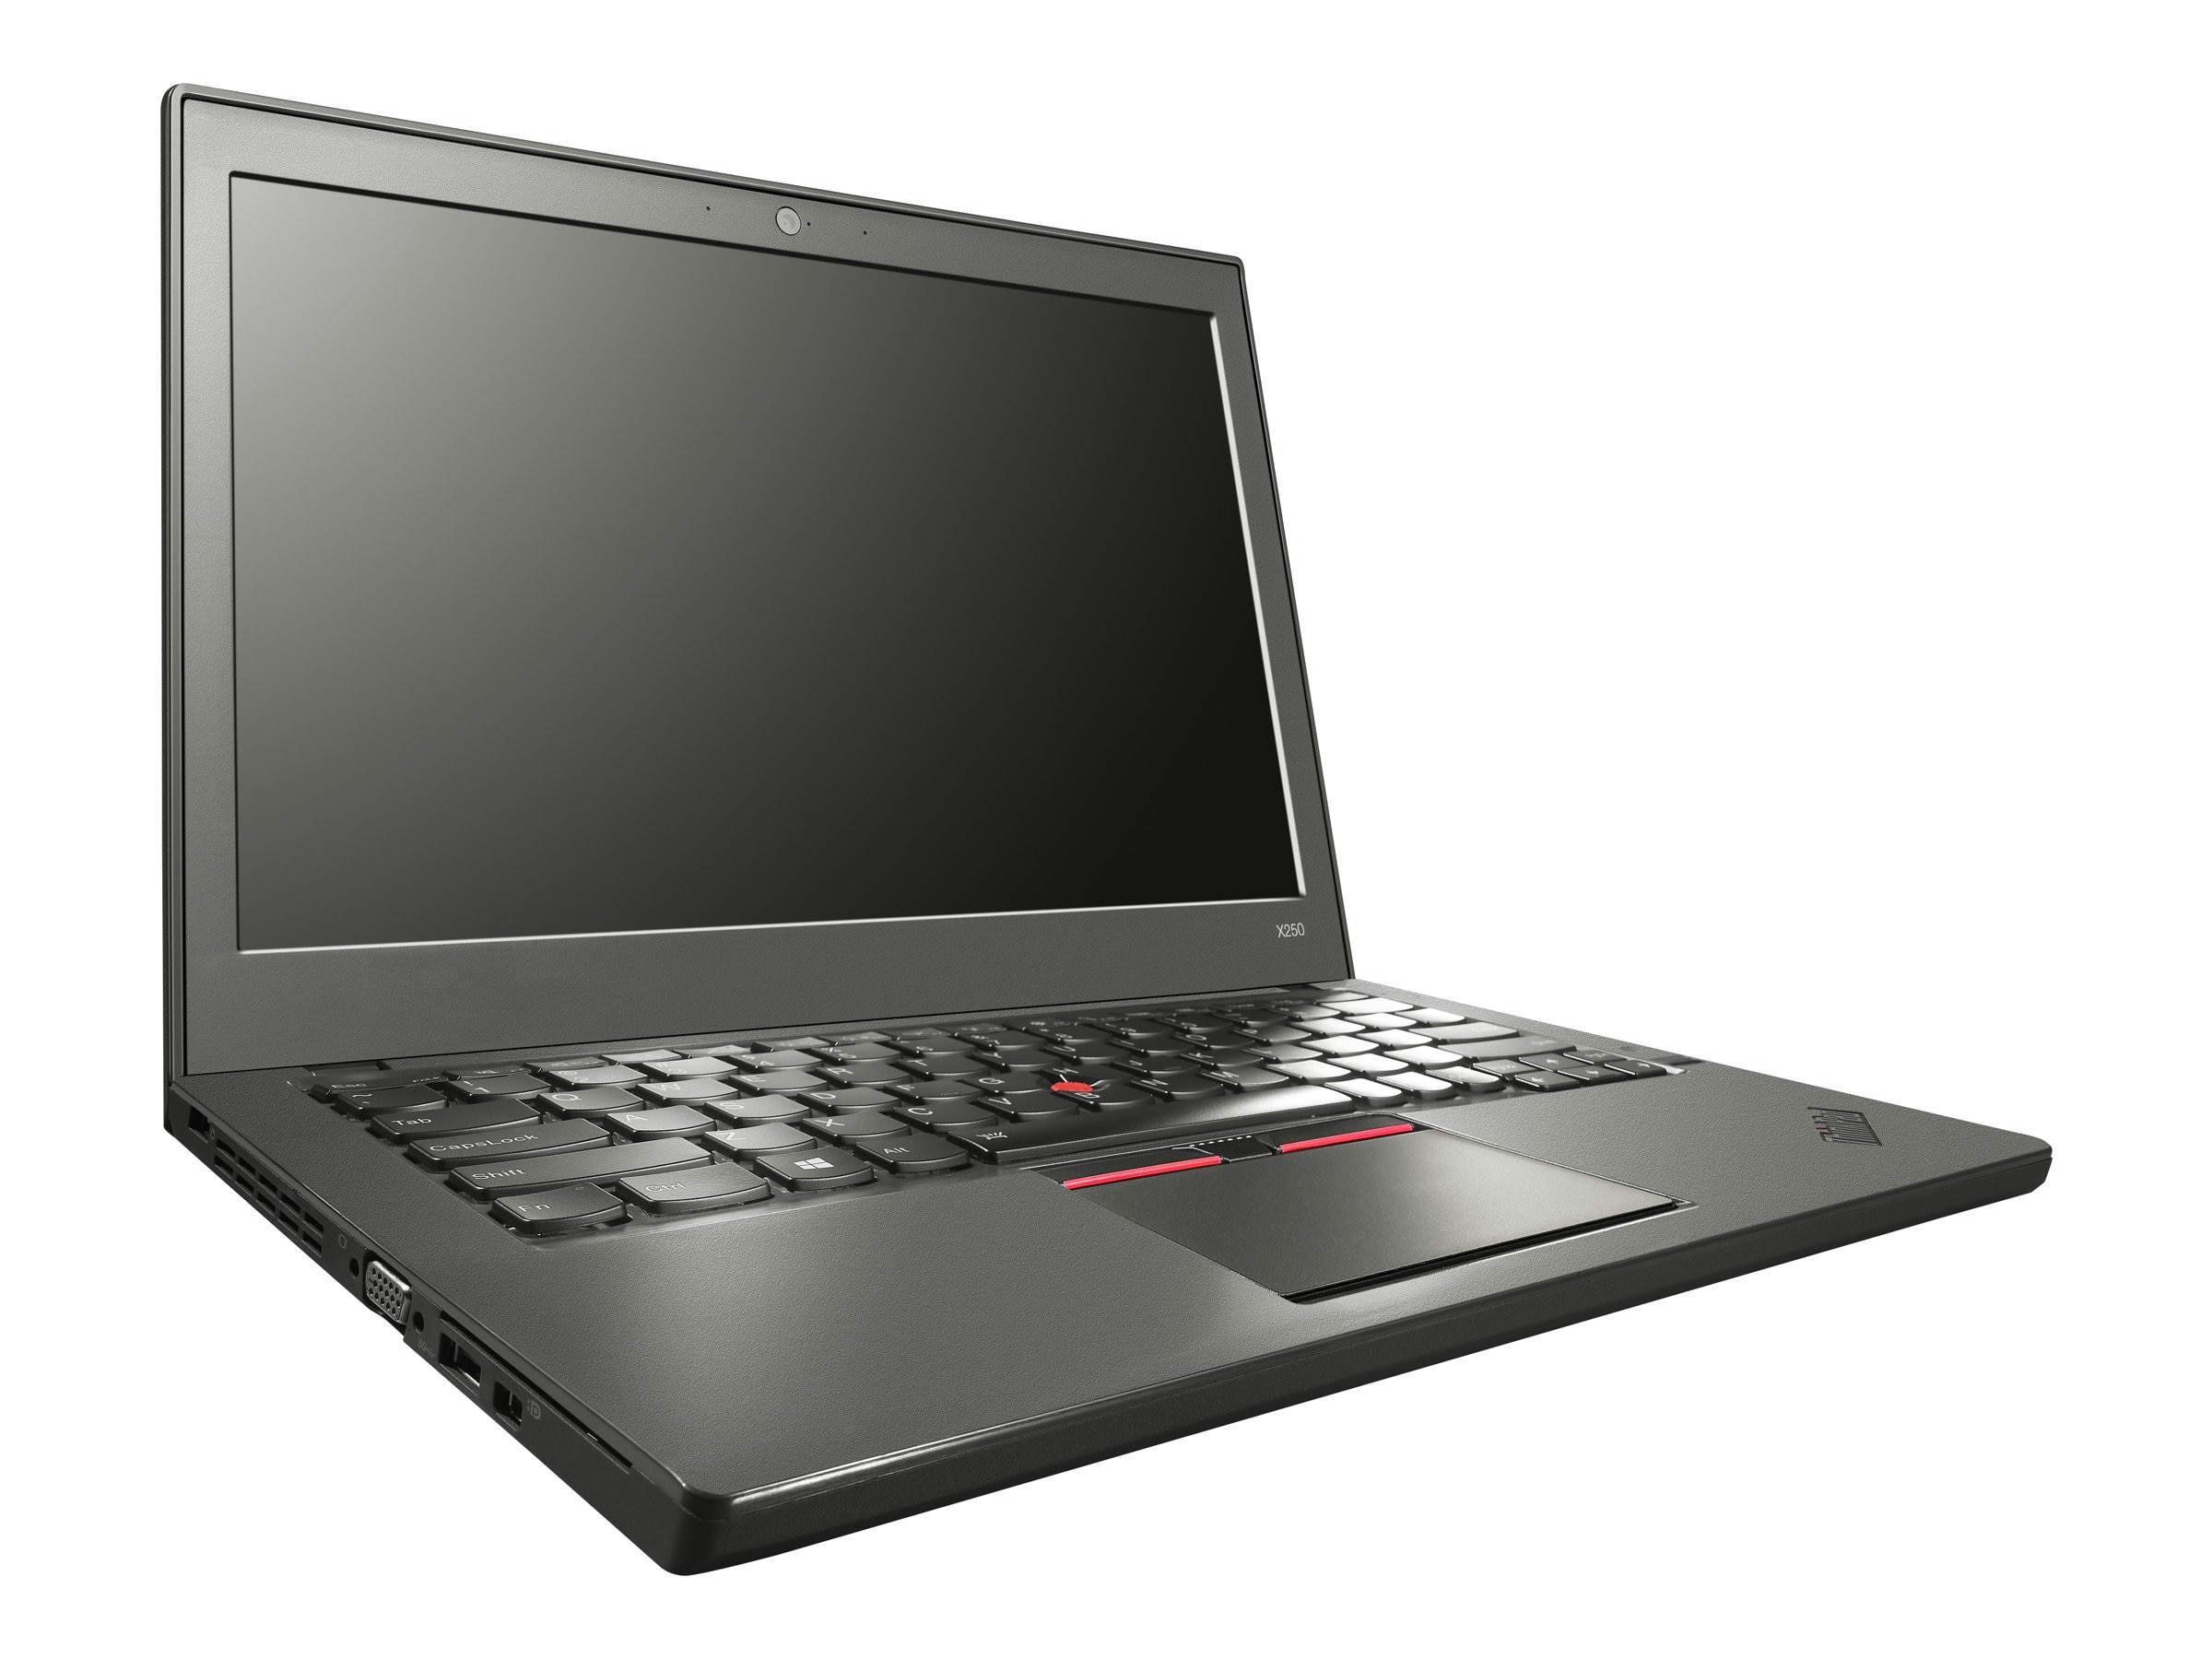 Lenovo TopSeller ThinkPad X250 2.3GHz Core i5 12.5in display, 20CM008BUS